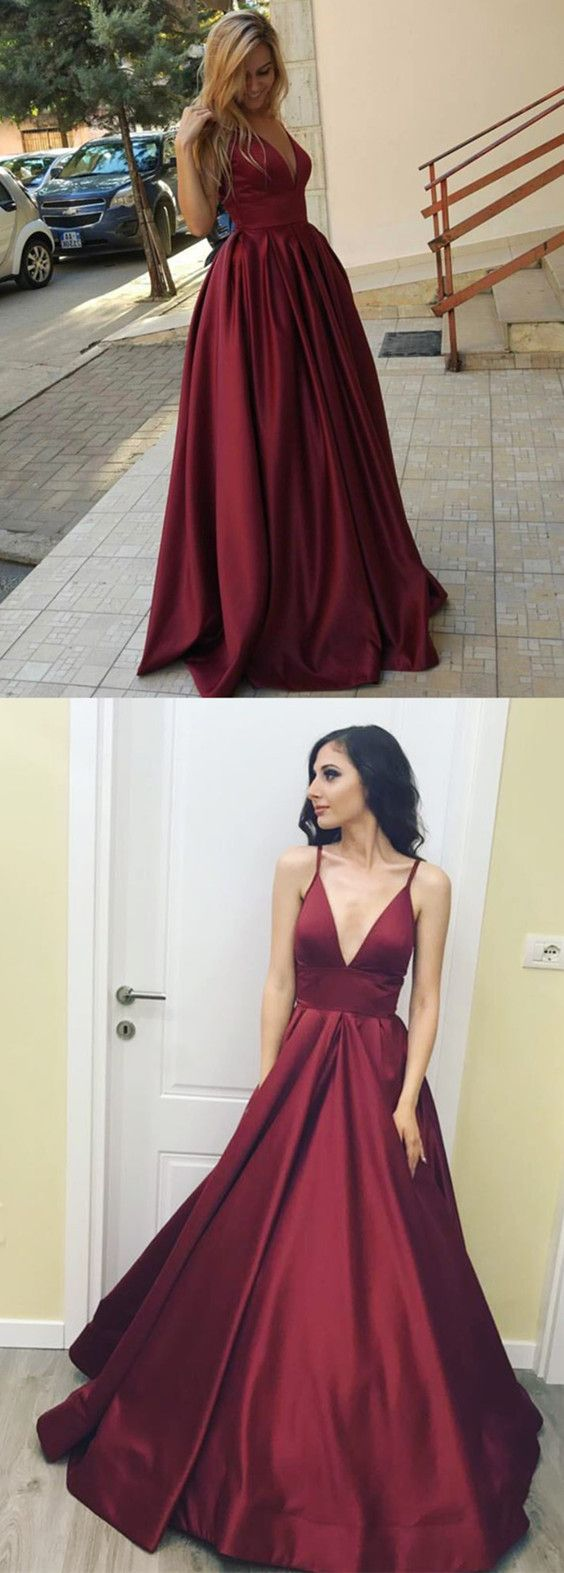 Burgundy satin v neck long evening gowns for wedding party prom